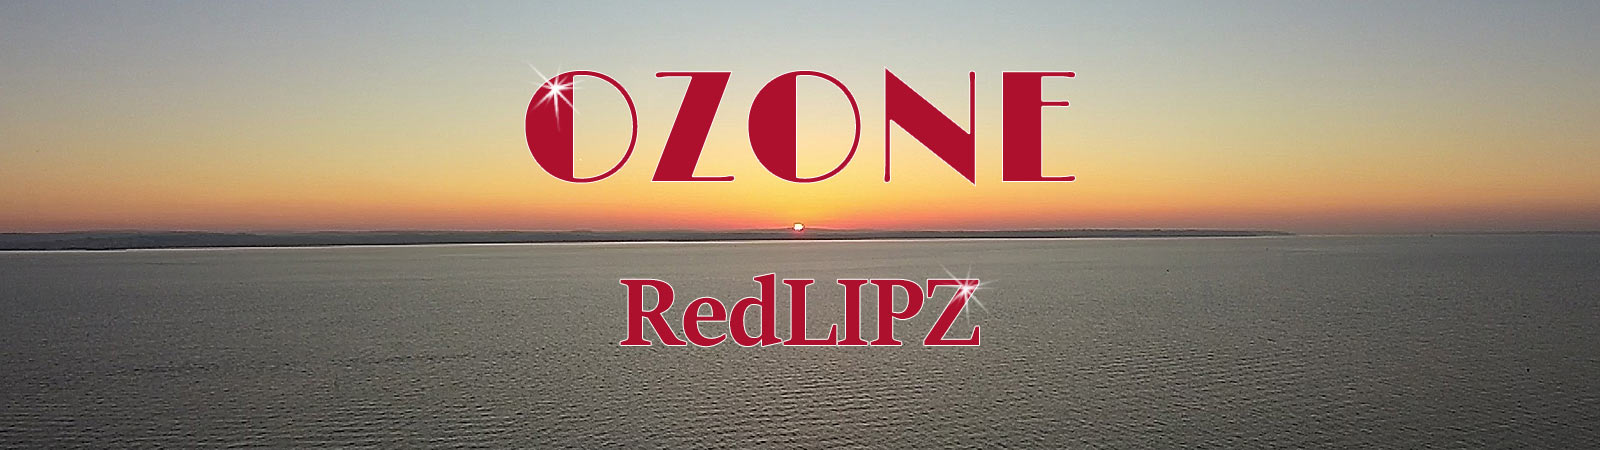 Ozone is a new single by Redlipz